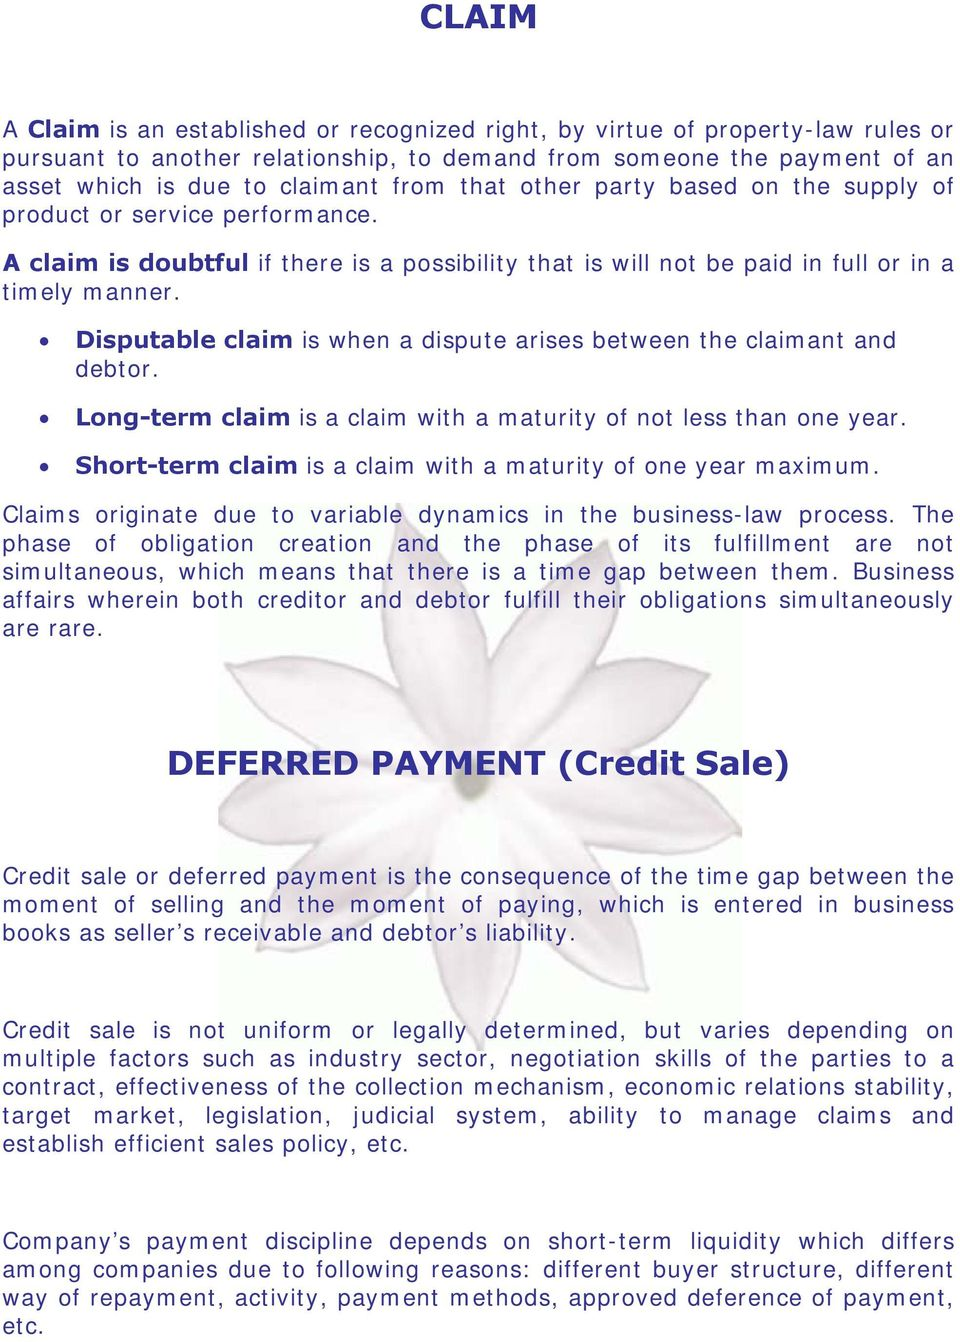 Disputable claim is when a dispute arises between the claimant and debtor. Long-term claim is a claim with a maturity of not less than one year.